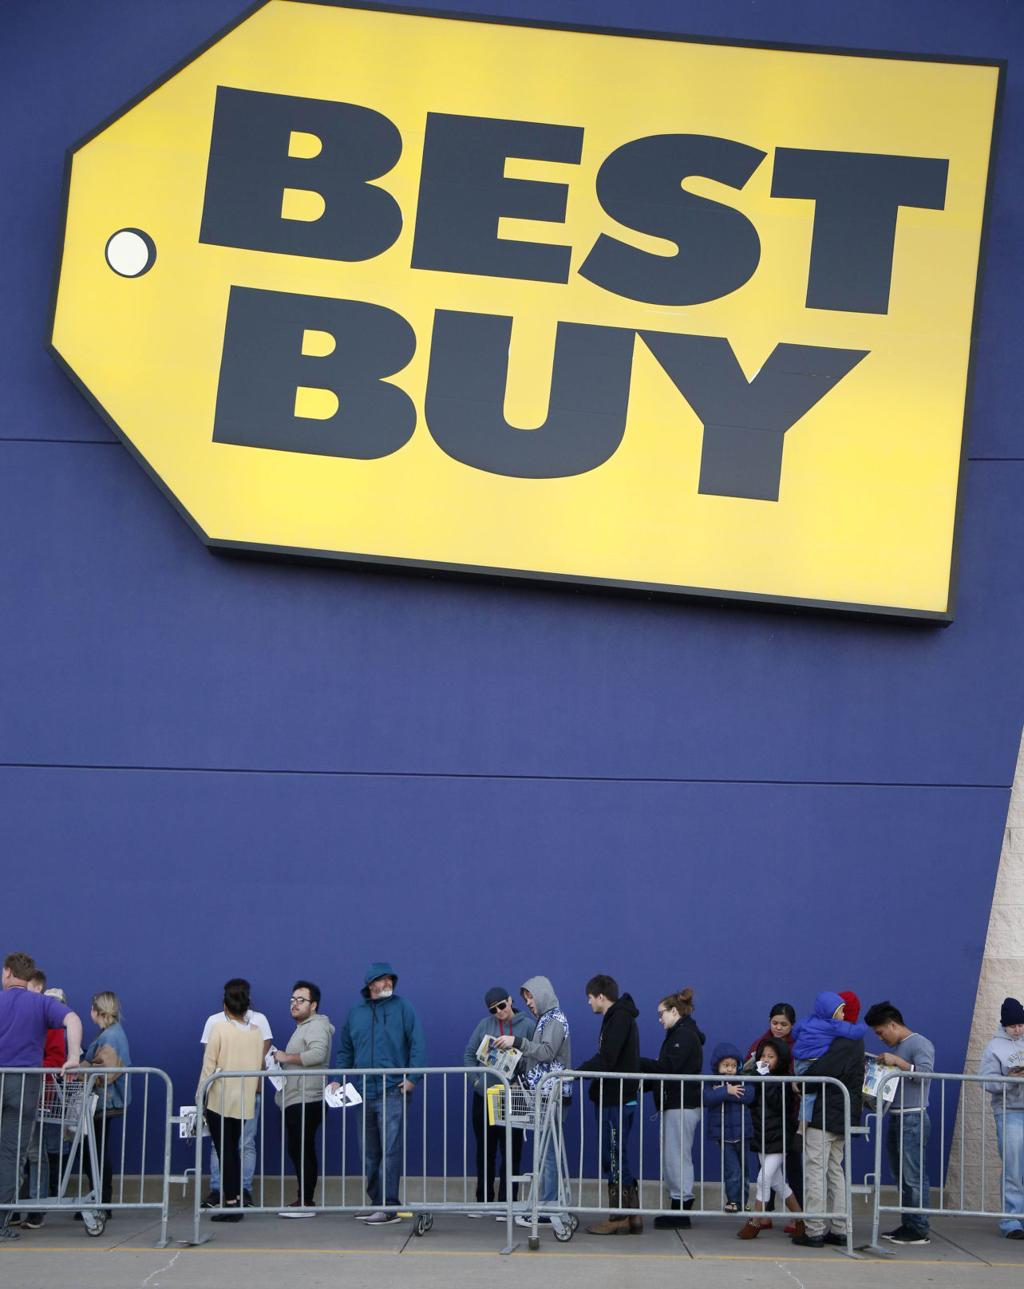 best buy at tulsa hills to reopen today business news tulsaworld com best buy at tulsa hills to reopen today